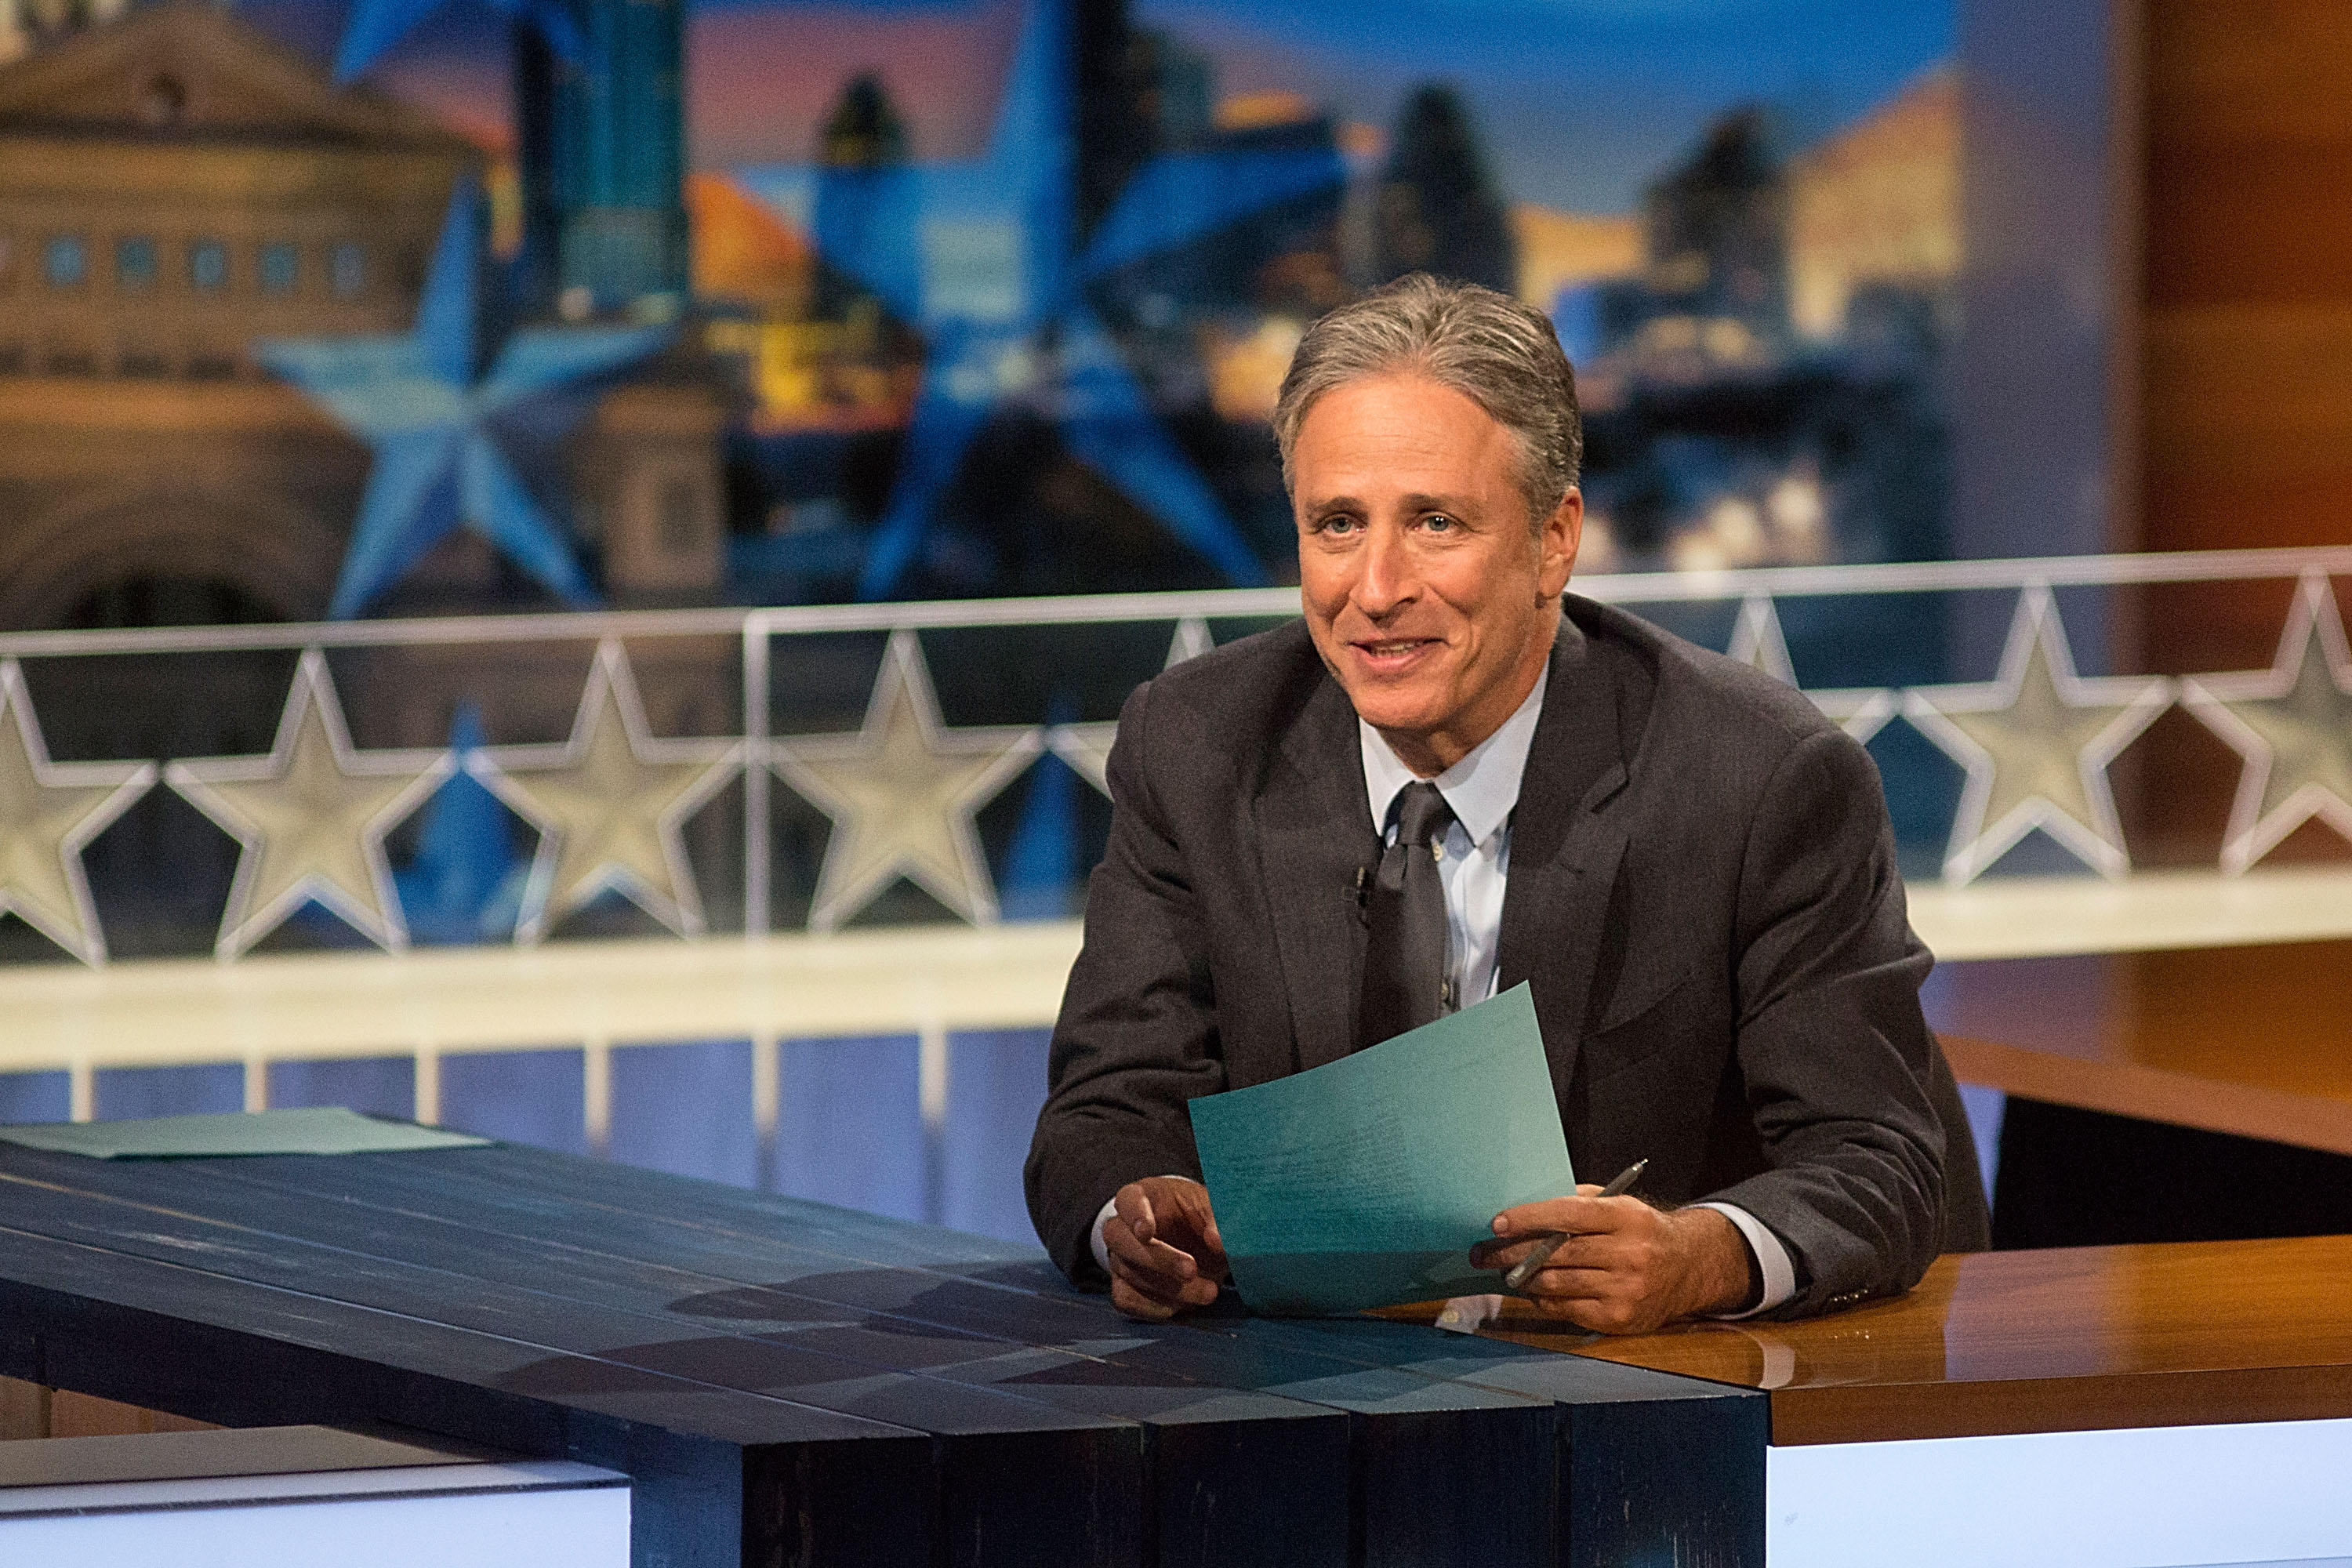 Host Jon Stewart at  The Daily Show with Jon Stewart  covers the Midterm elections with  Democalypse 2014: South By South Mess  on Oct. 28, 2014 in Austin, Texas.